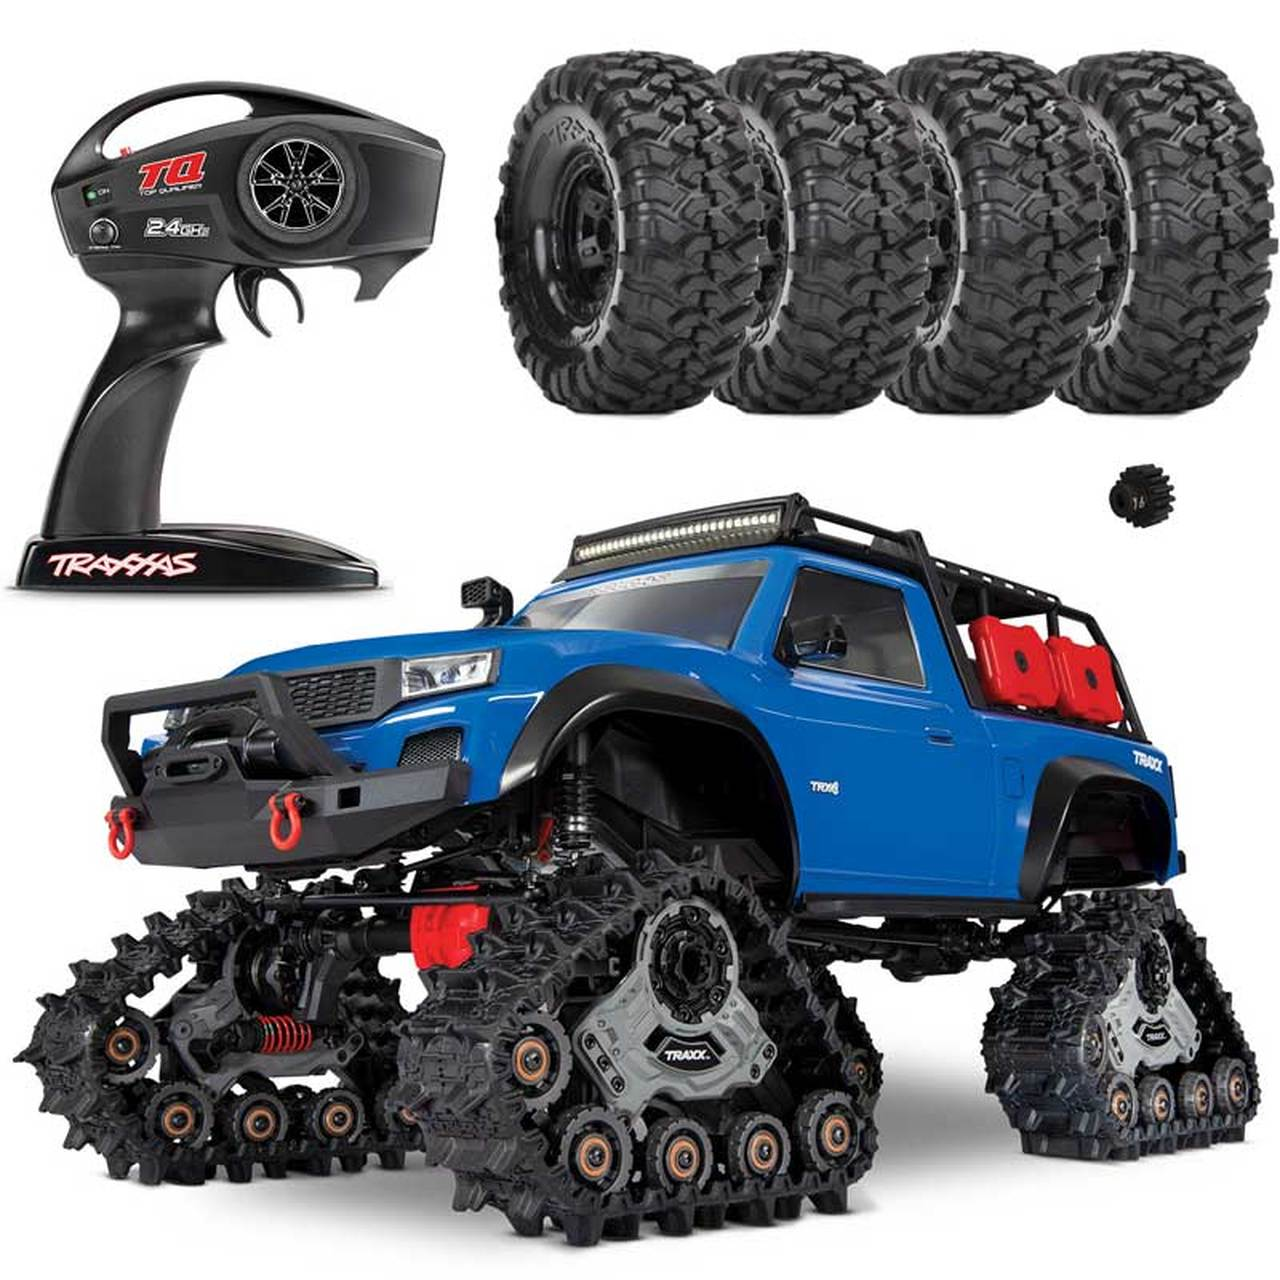 traxxas-trx-4-traxx-trail-rock-crawler-(blue)-w-all-terrain-&-tires-w-tq-2.4ghz-radio-system